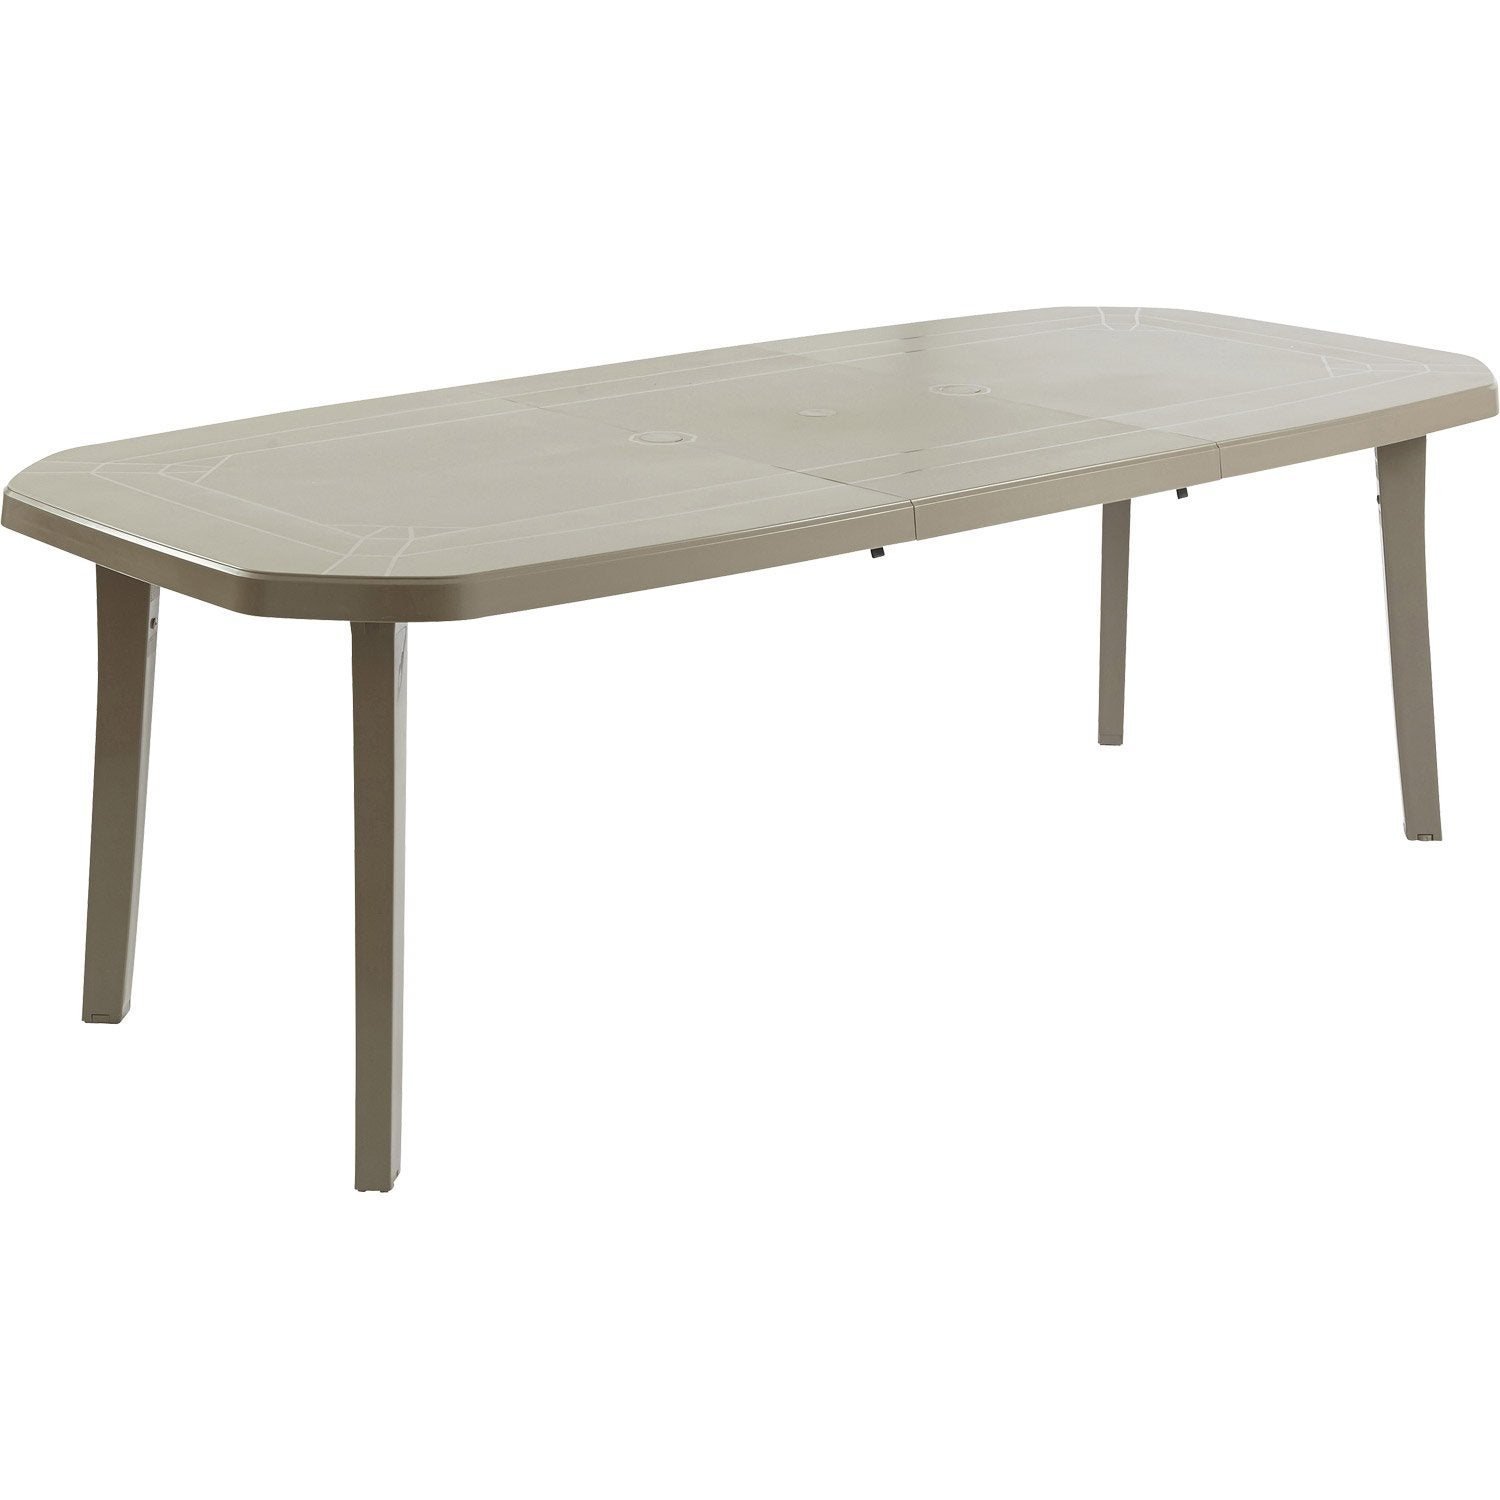 Table de jardin rectangulaire miami grosfillex leroy merlin for Table de salon de jardin plastique